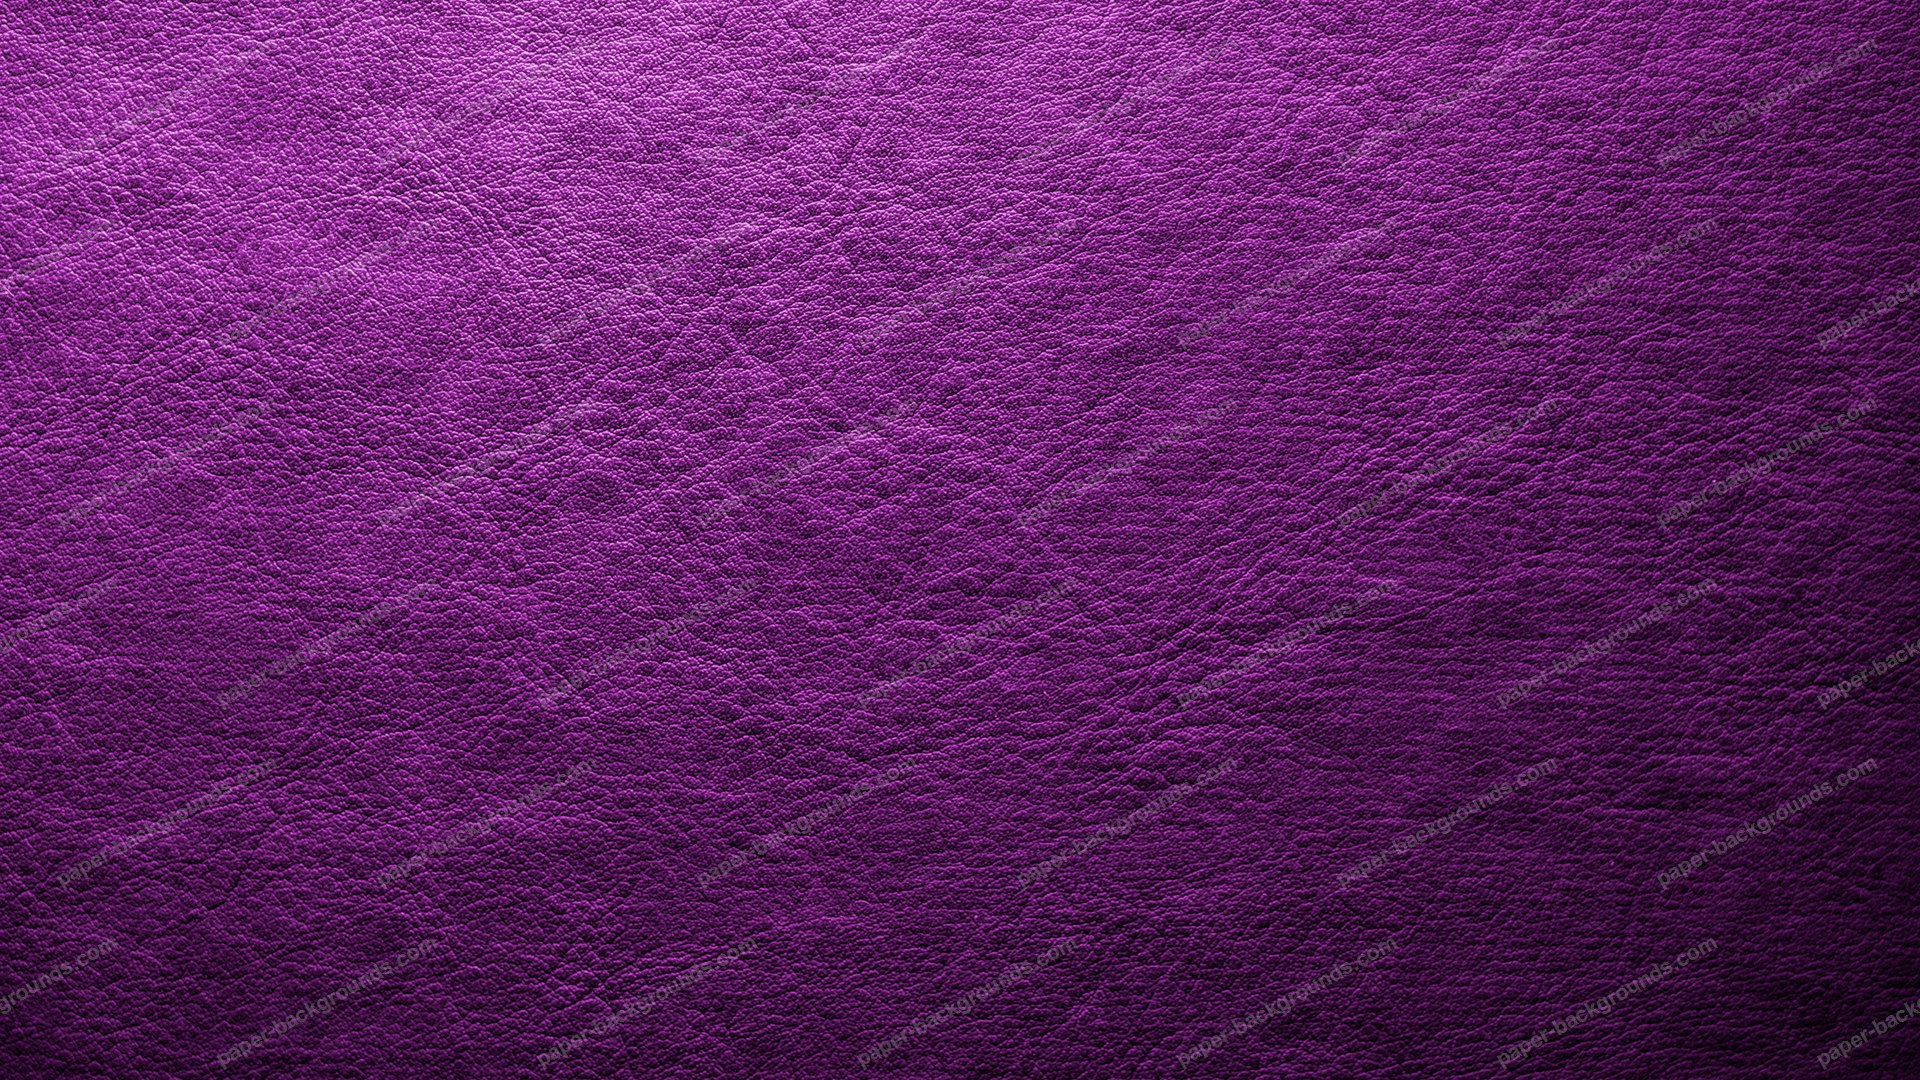 Abstract Purple Leather Background HD 1920 x 1080p